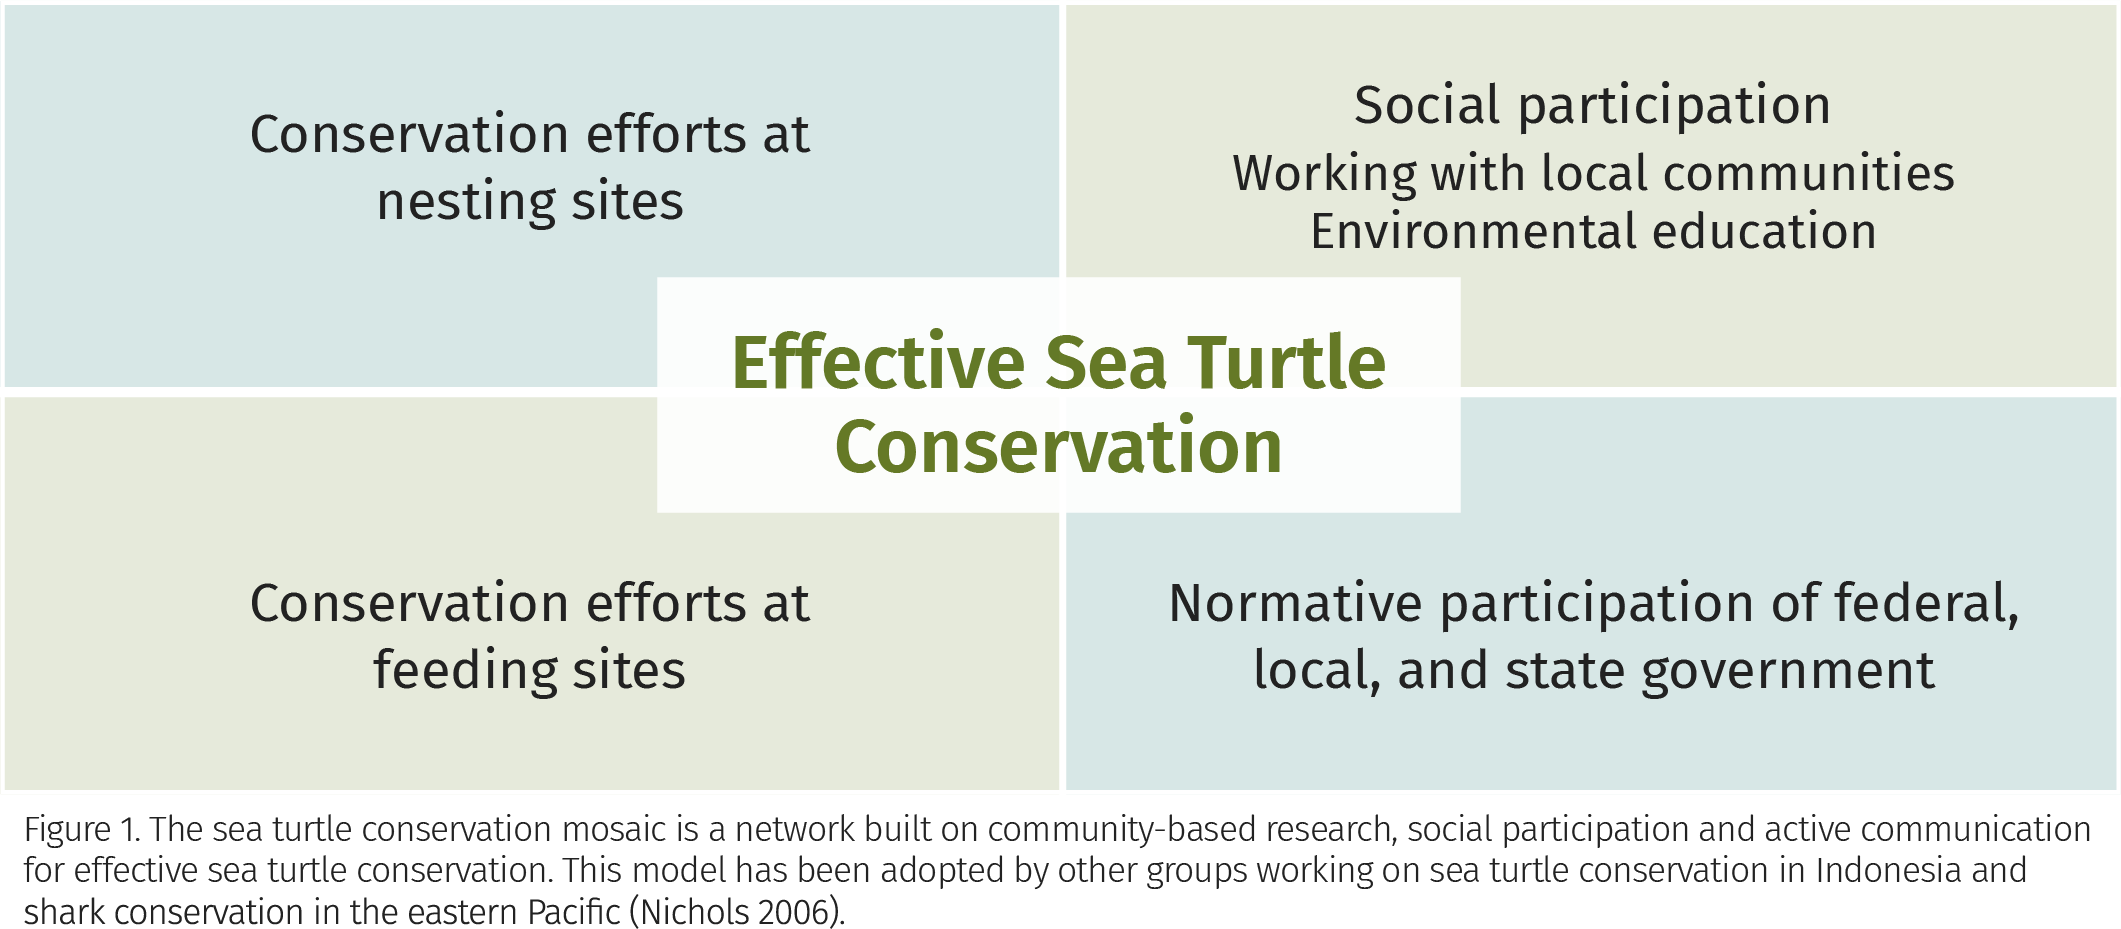 Figure 1. The sea turtle conservation mosaic is a network built on community-based research, social participation and active communication for effective sea turtle conservation. This model has been adopted by other groups working on sea turtle conservation in Indonesia and shark conservation in the eastern Pacific (Nichols 2006).